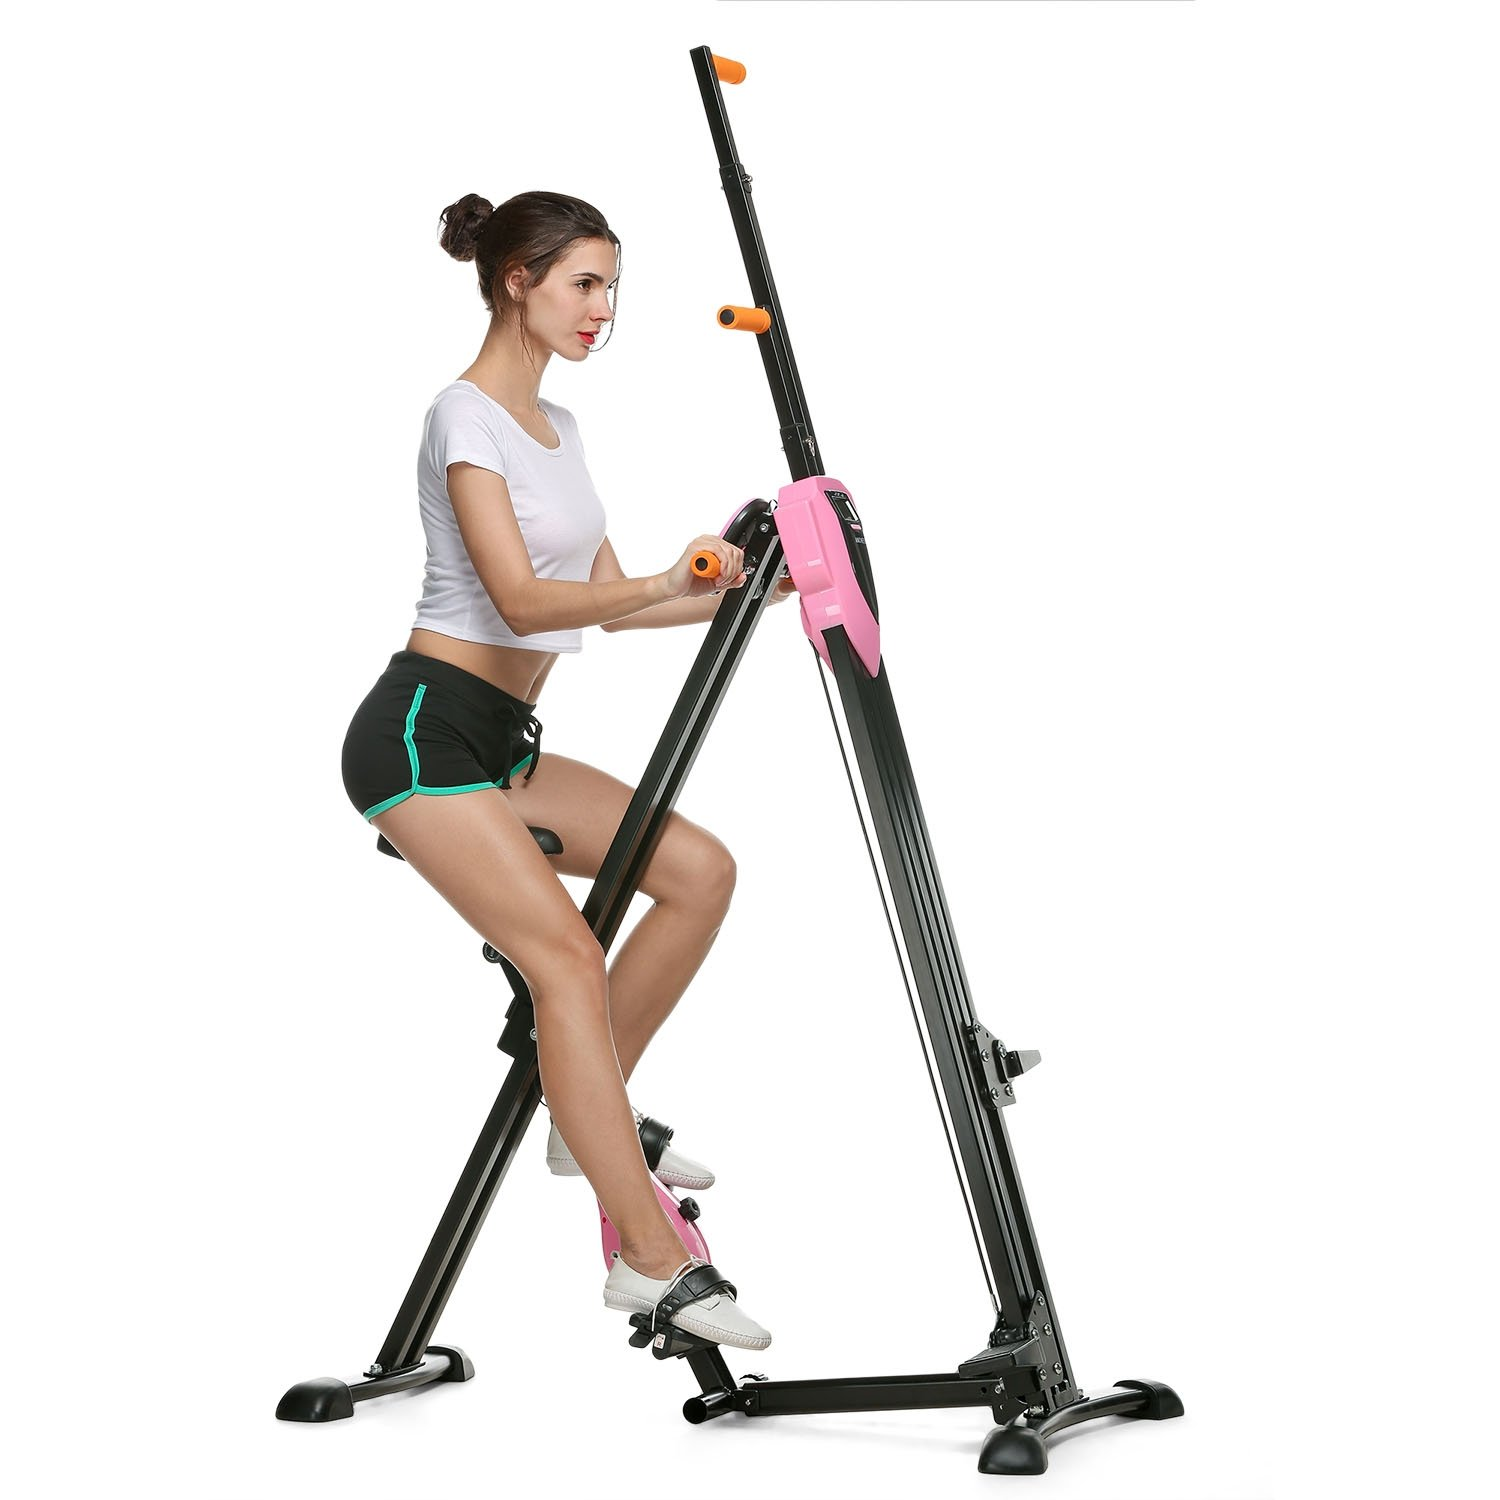 Asatr Vertical Climber Folding Gym Exercise Fitness Machine Stepper Exercise Bike for Home Body Trainer by Asatr (Image #2)